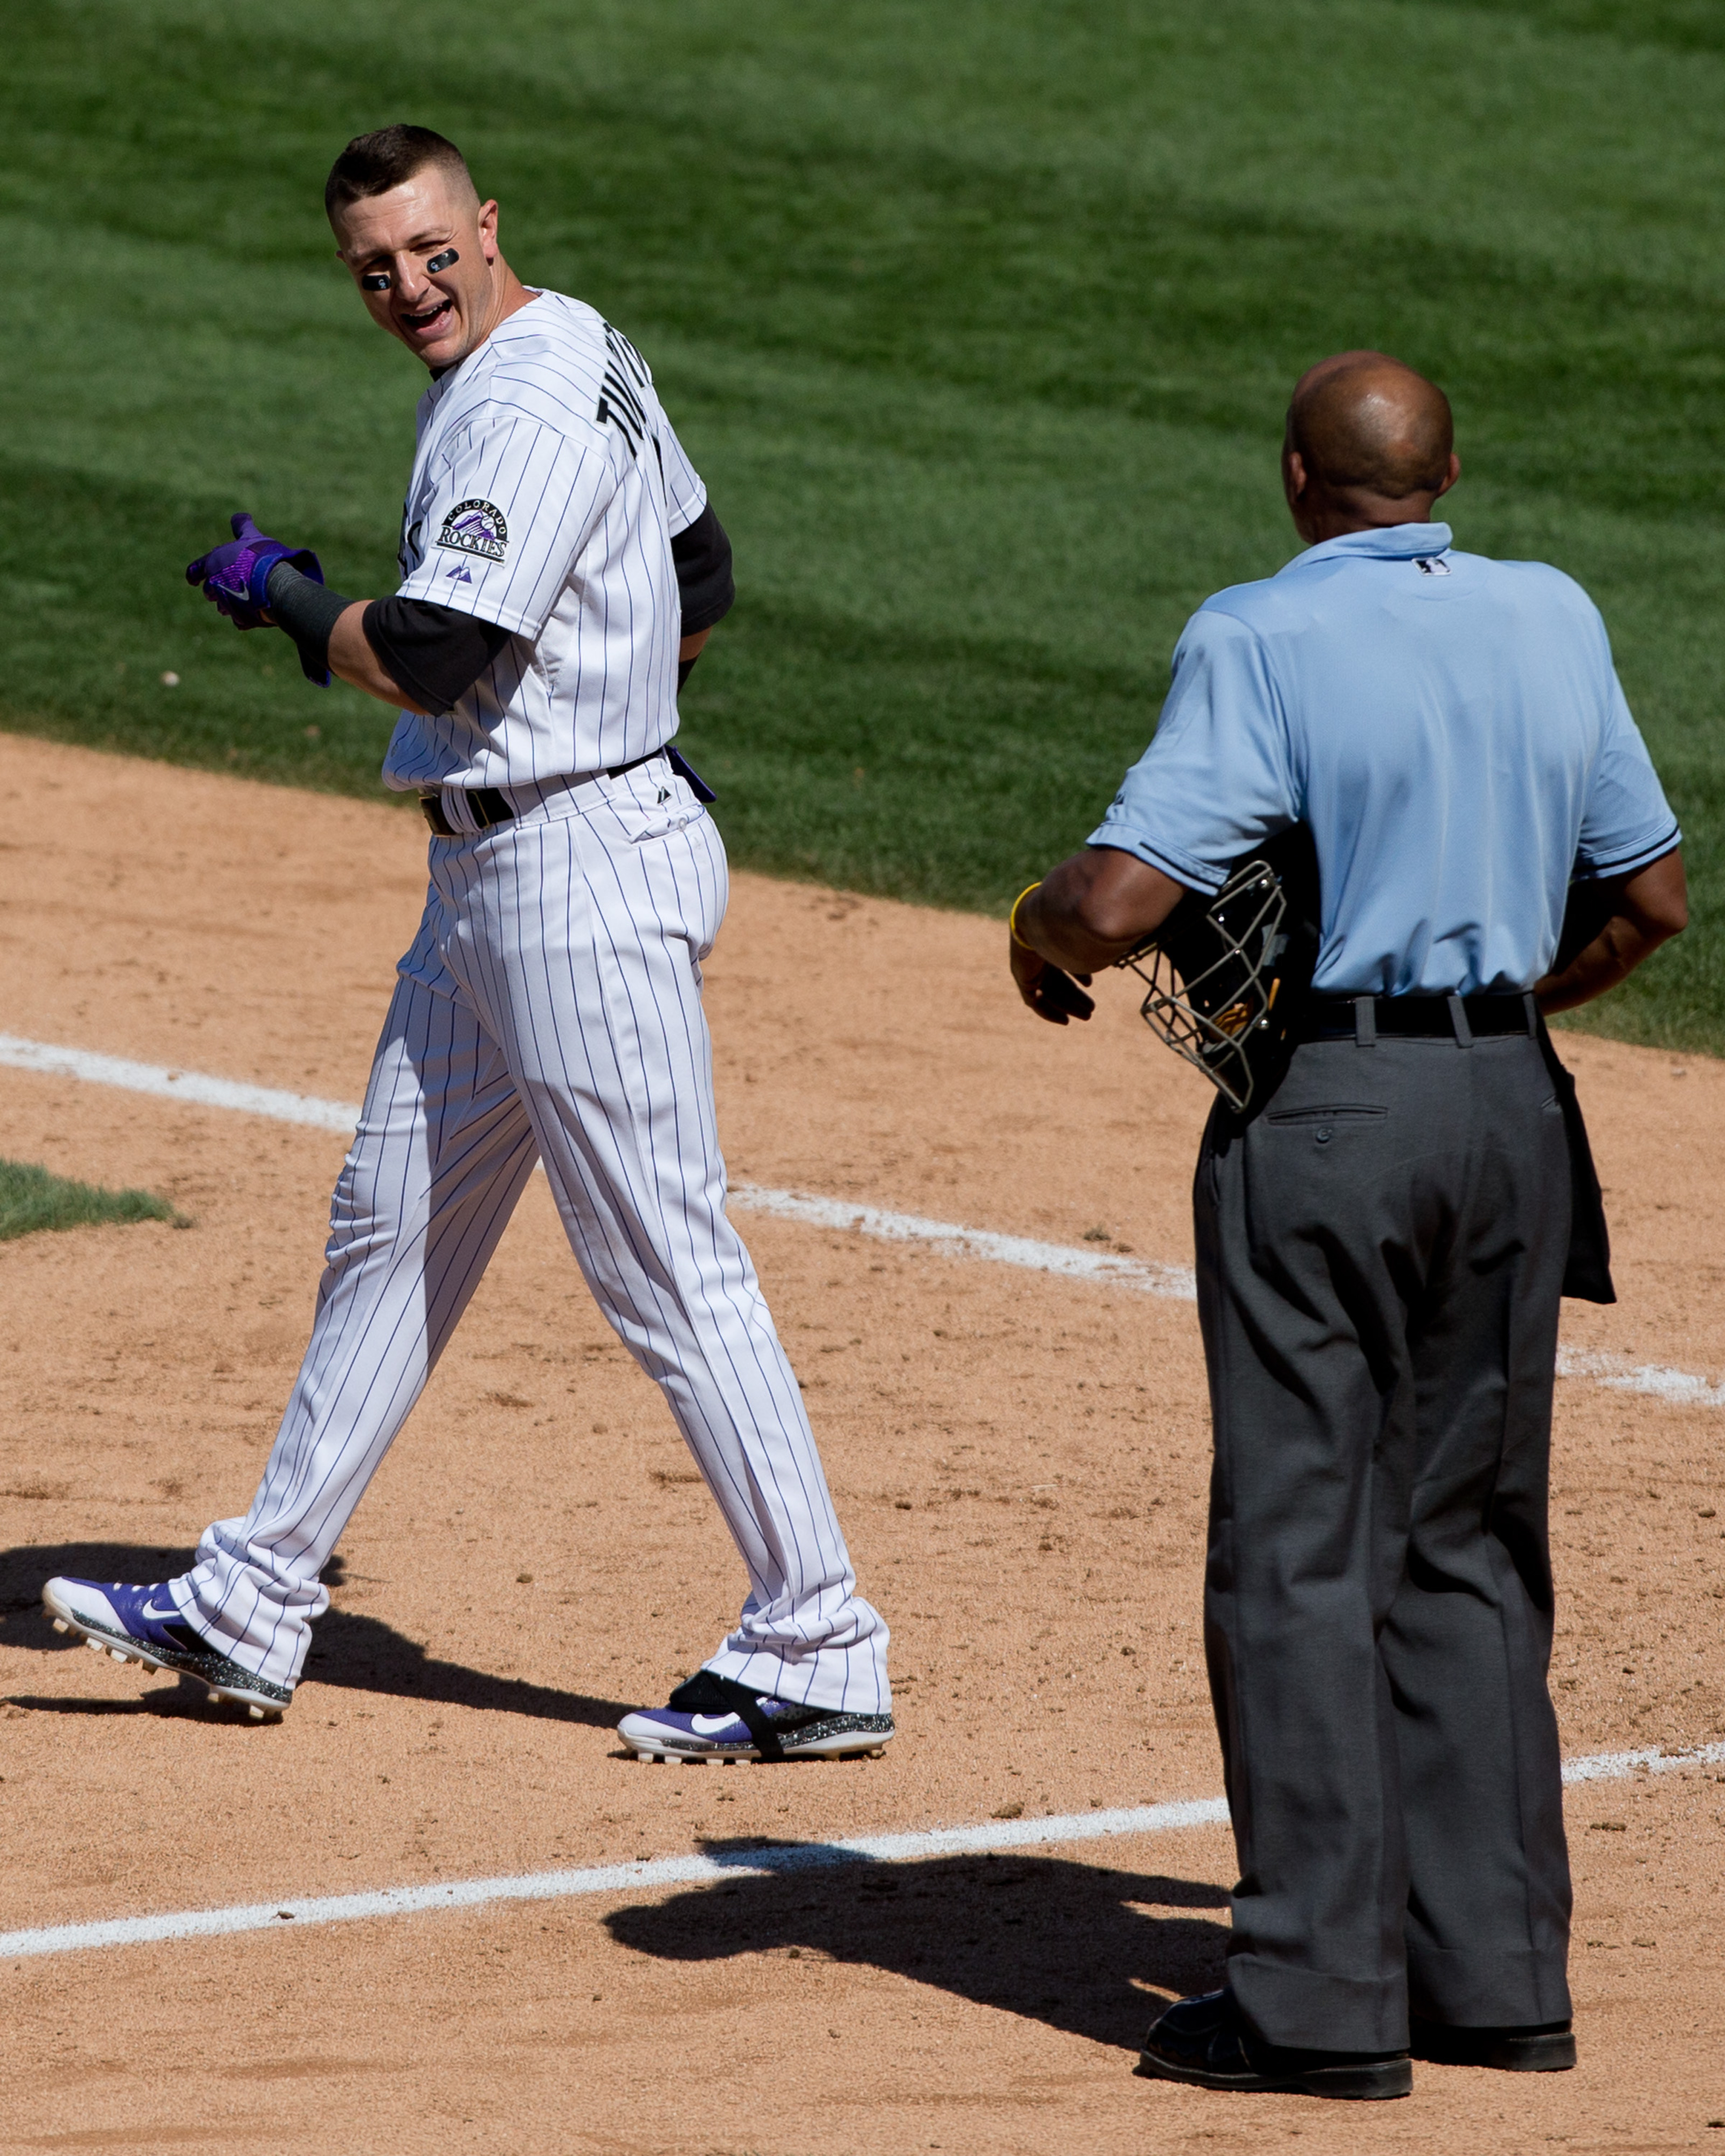 """Searching SBN's photo archive for """"Troy Tulowitzki strike out"""" reveals a lot of this"""